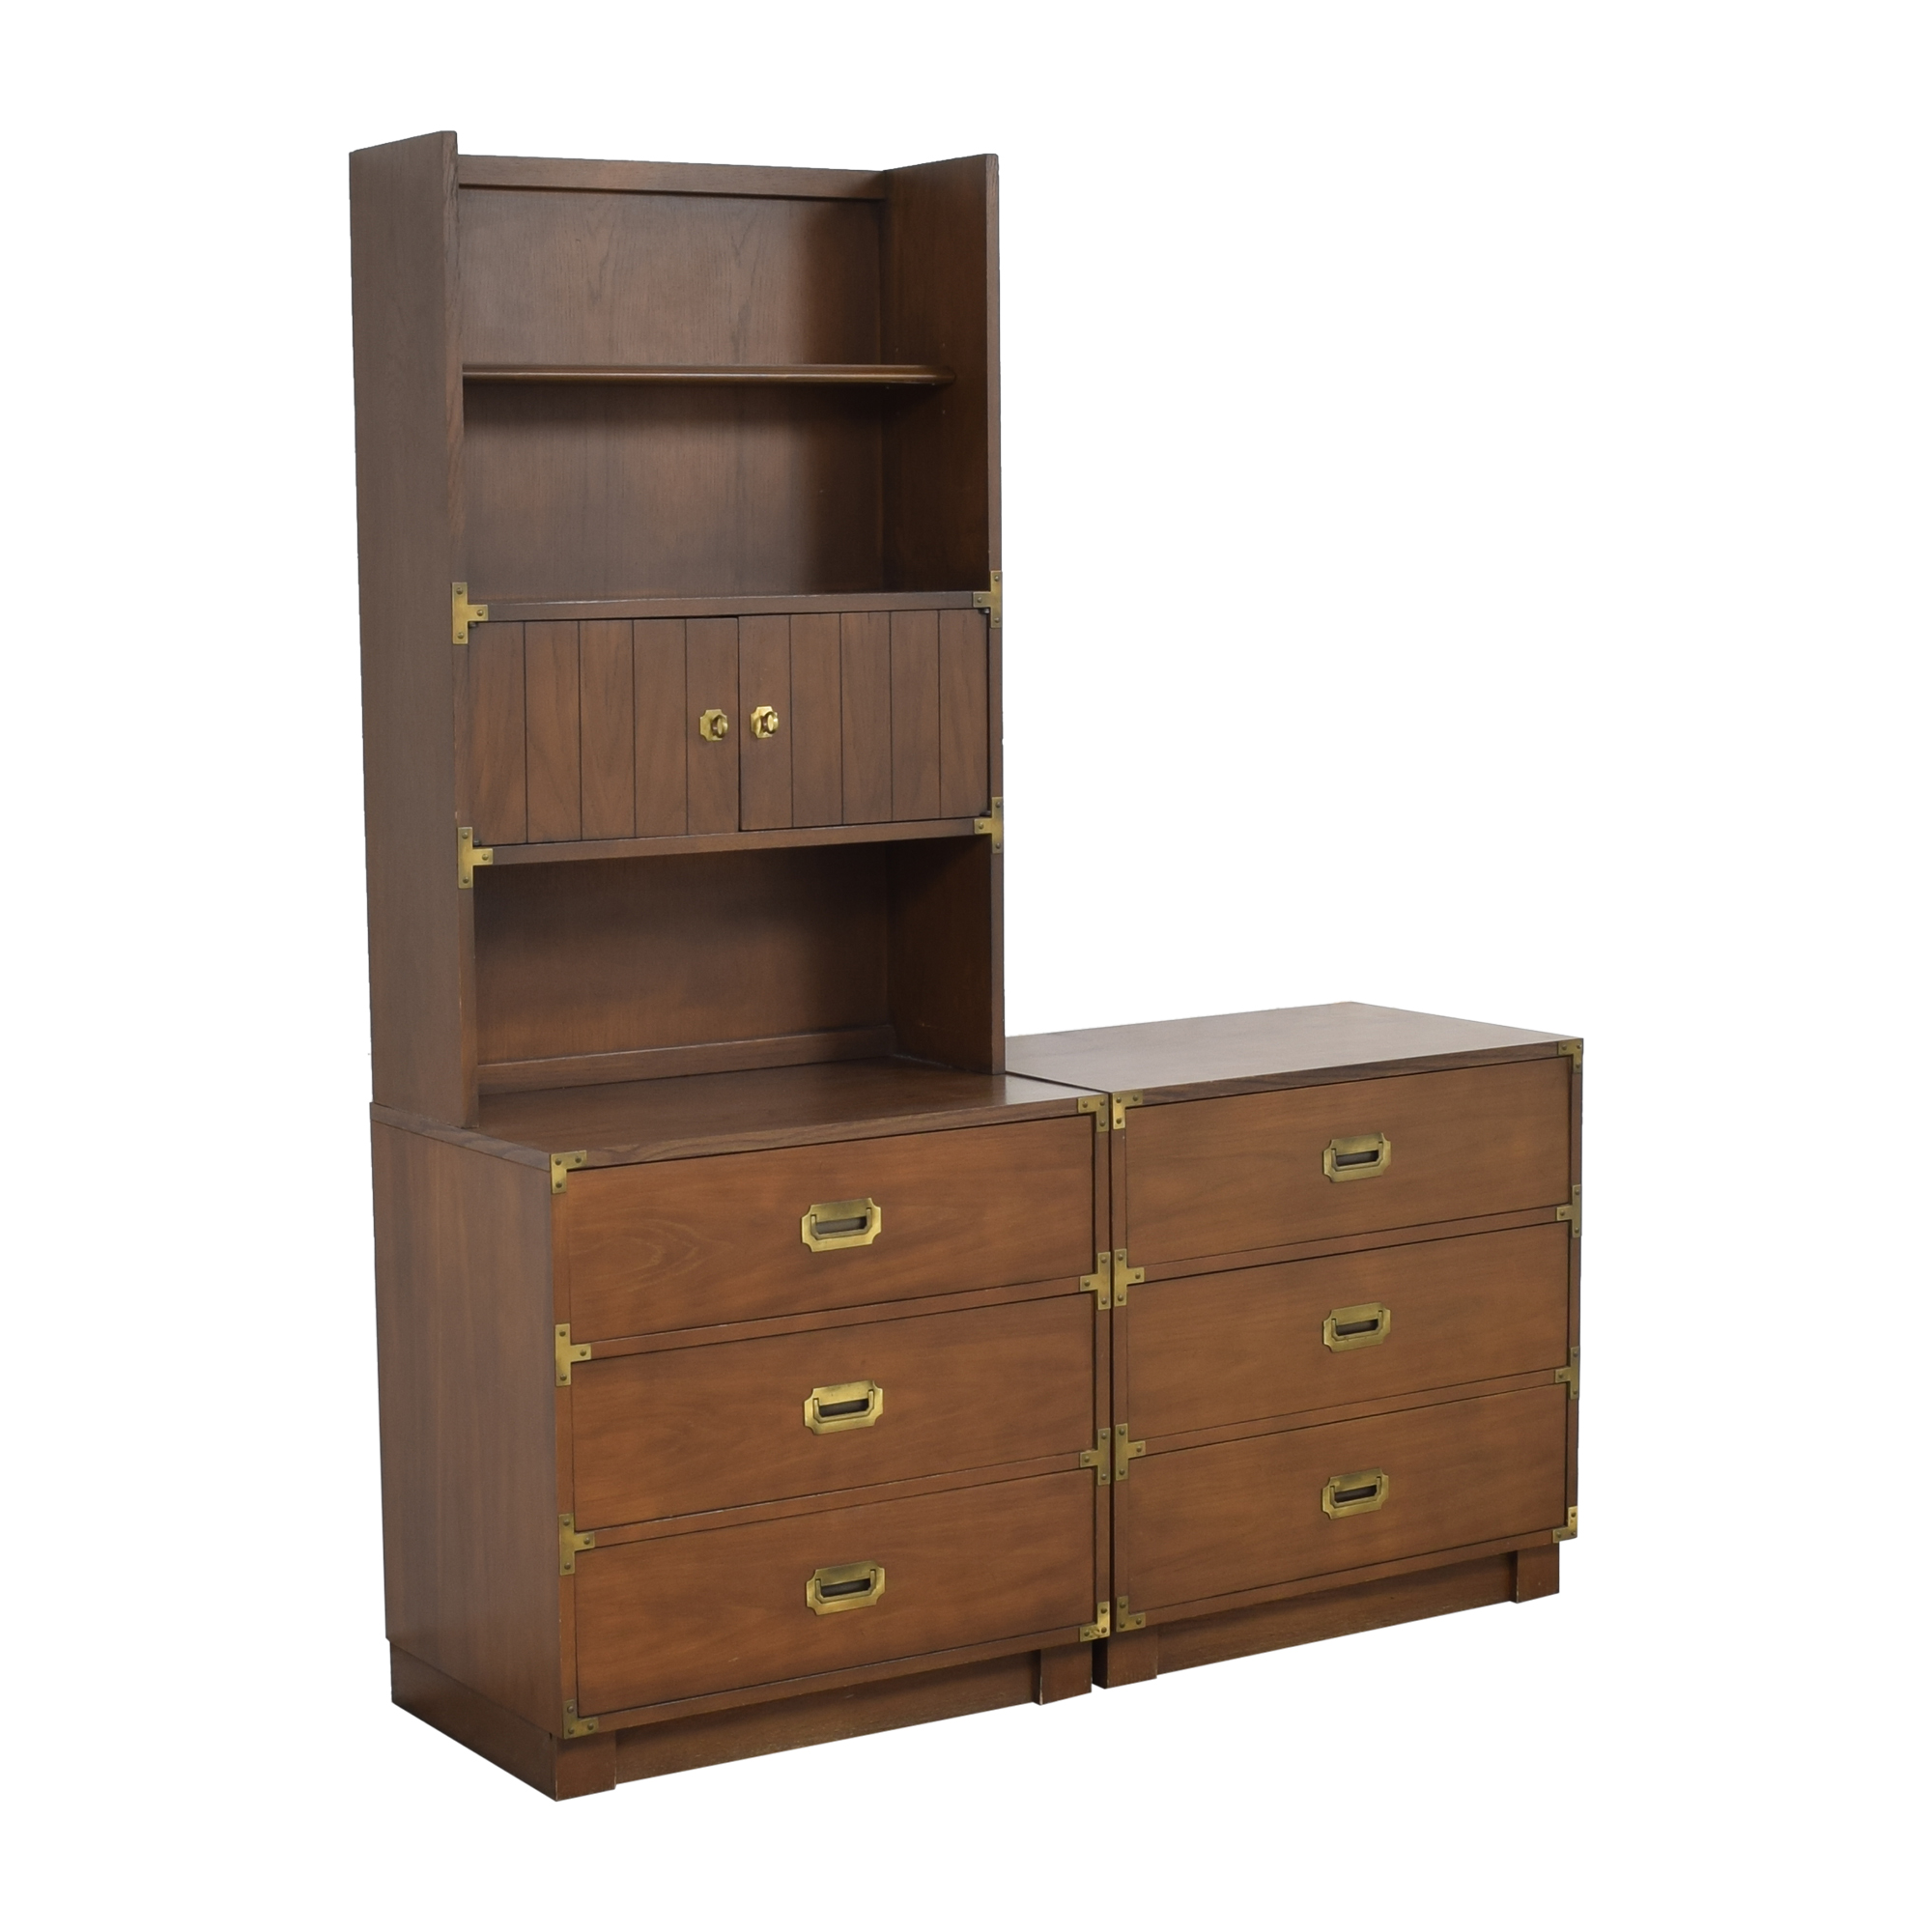 Drexel Drexel Firstmate Three Drawer Dressers with Hutch discount